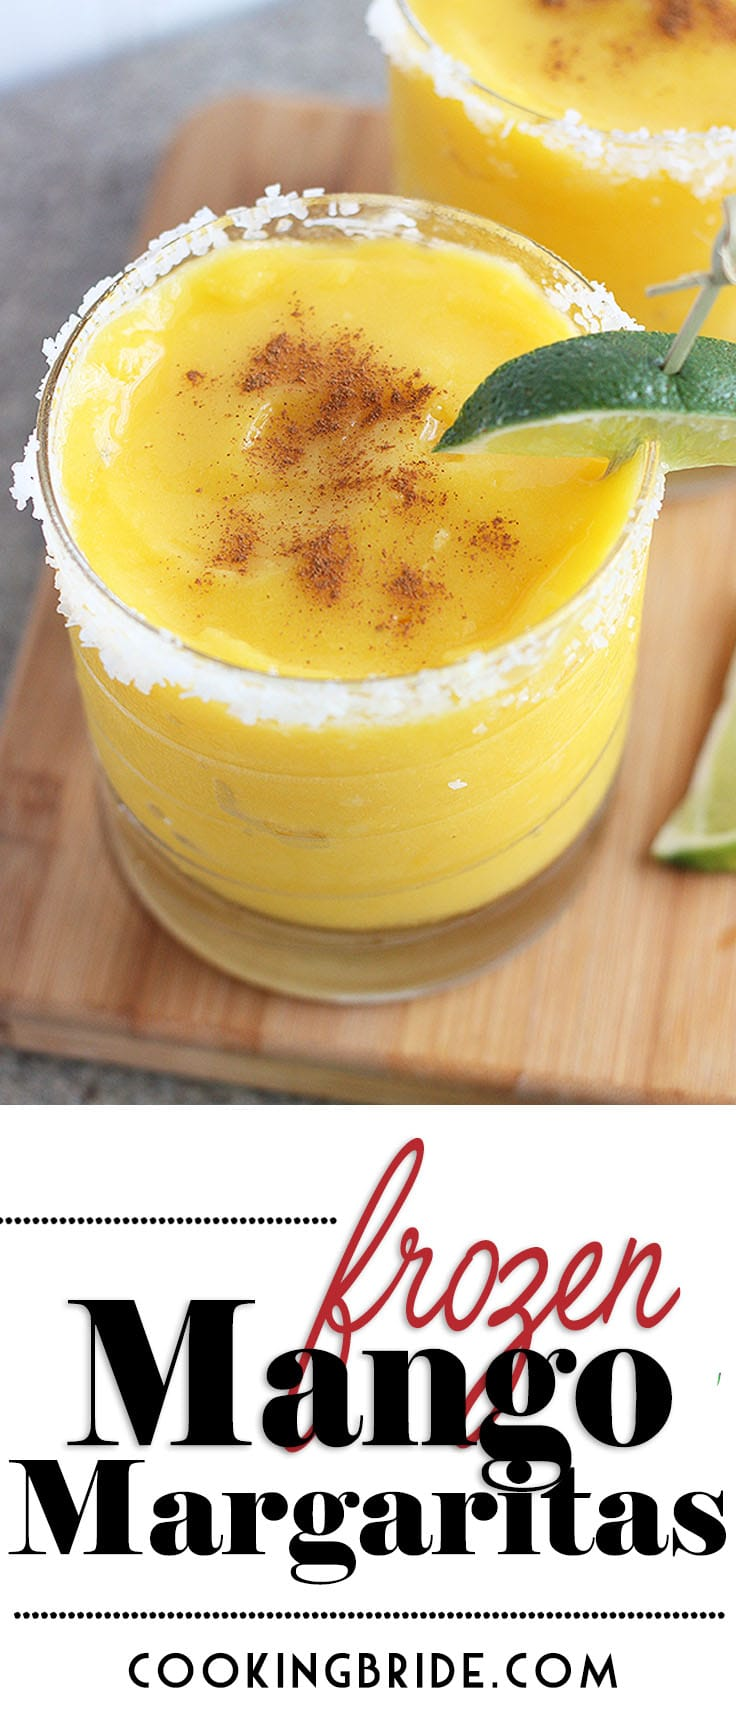 Frozen mango margarita recipe is sweet and refreshing. Frozen mango chunks and combined with orange juice, fresh lime juice and orange liquor, then garnished with a sprinkle of warm cinnamon.